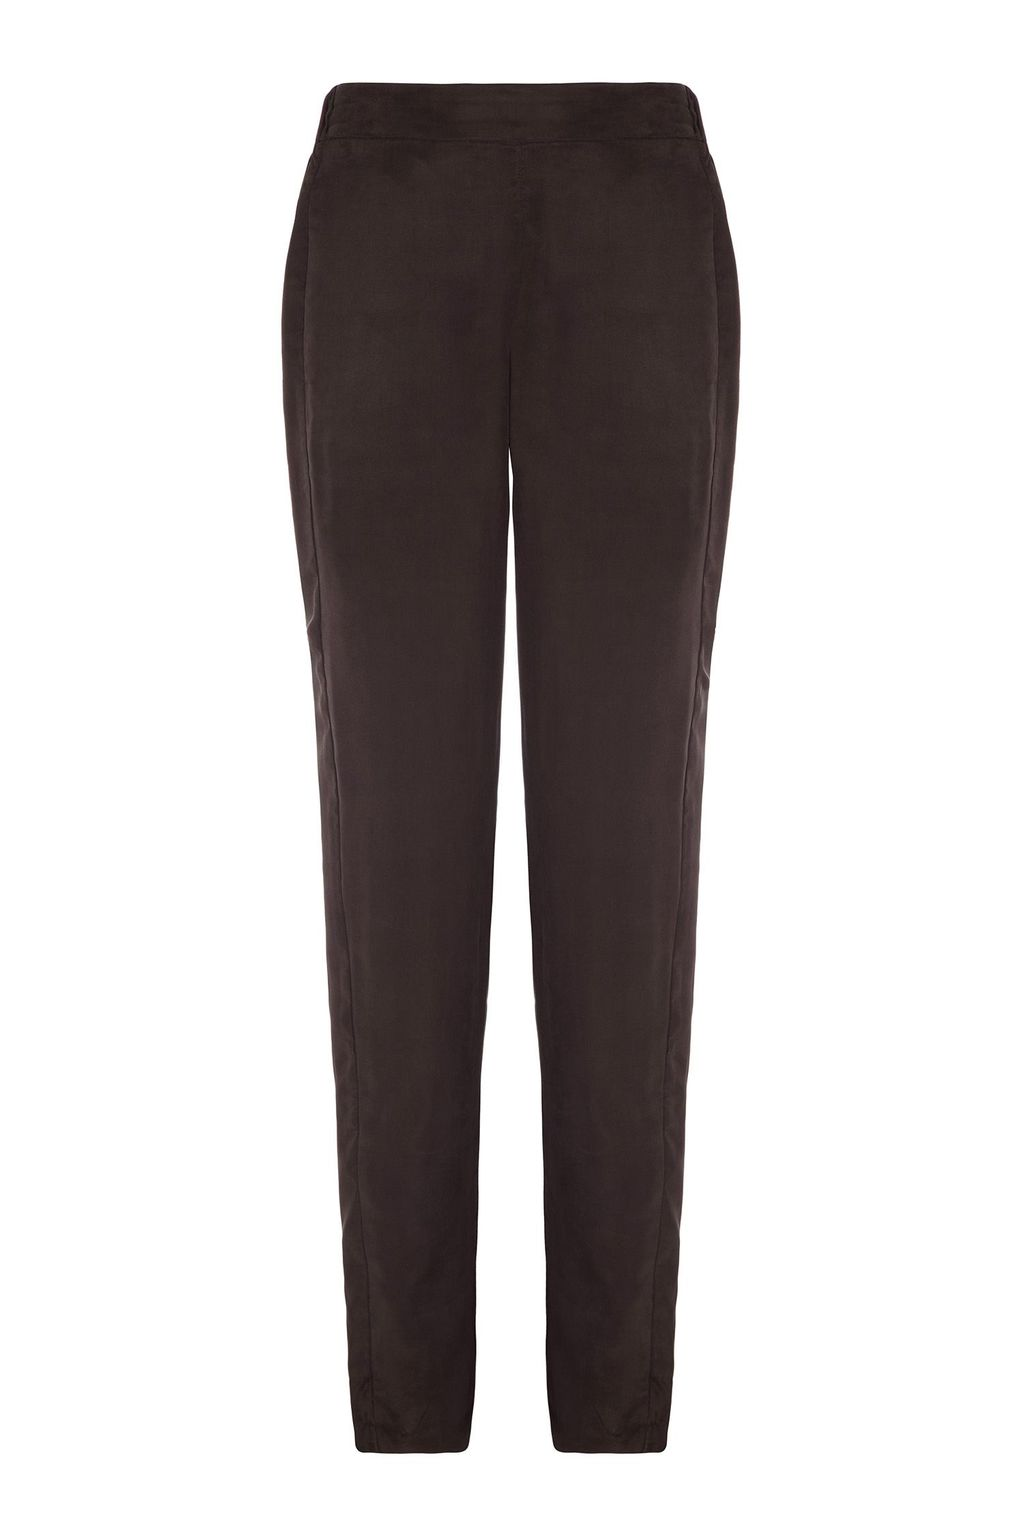 Nero Trouser, Black - pattern: plain; style: peg leg; waist: mid/regular rise; predominant colour: black; occasions: casual, evening, work, creative work; length: ankle length; fit: slim leg; pattern type: fabric; texture group: woven light midweight; season: s/s 2015